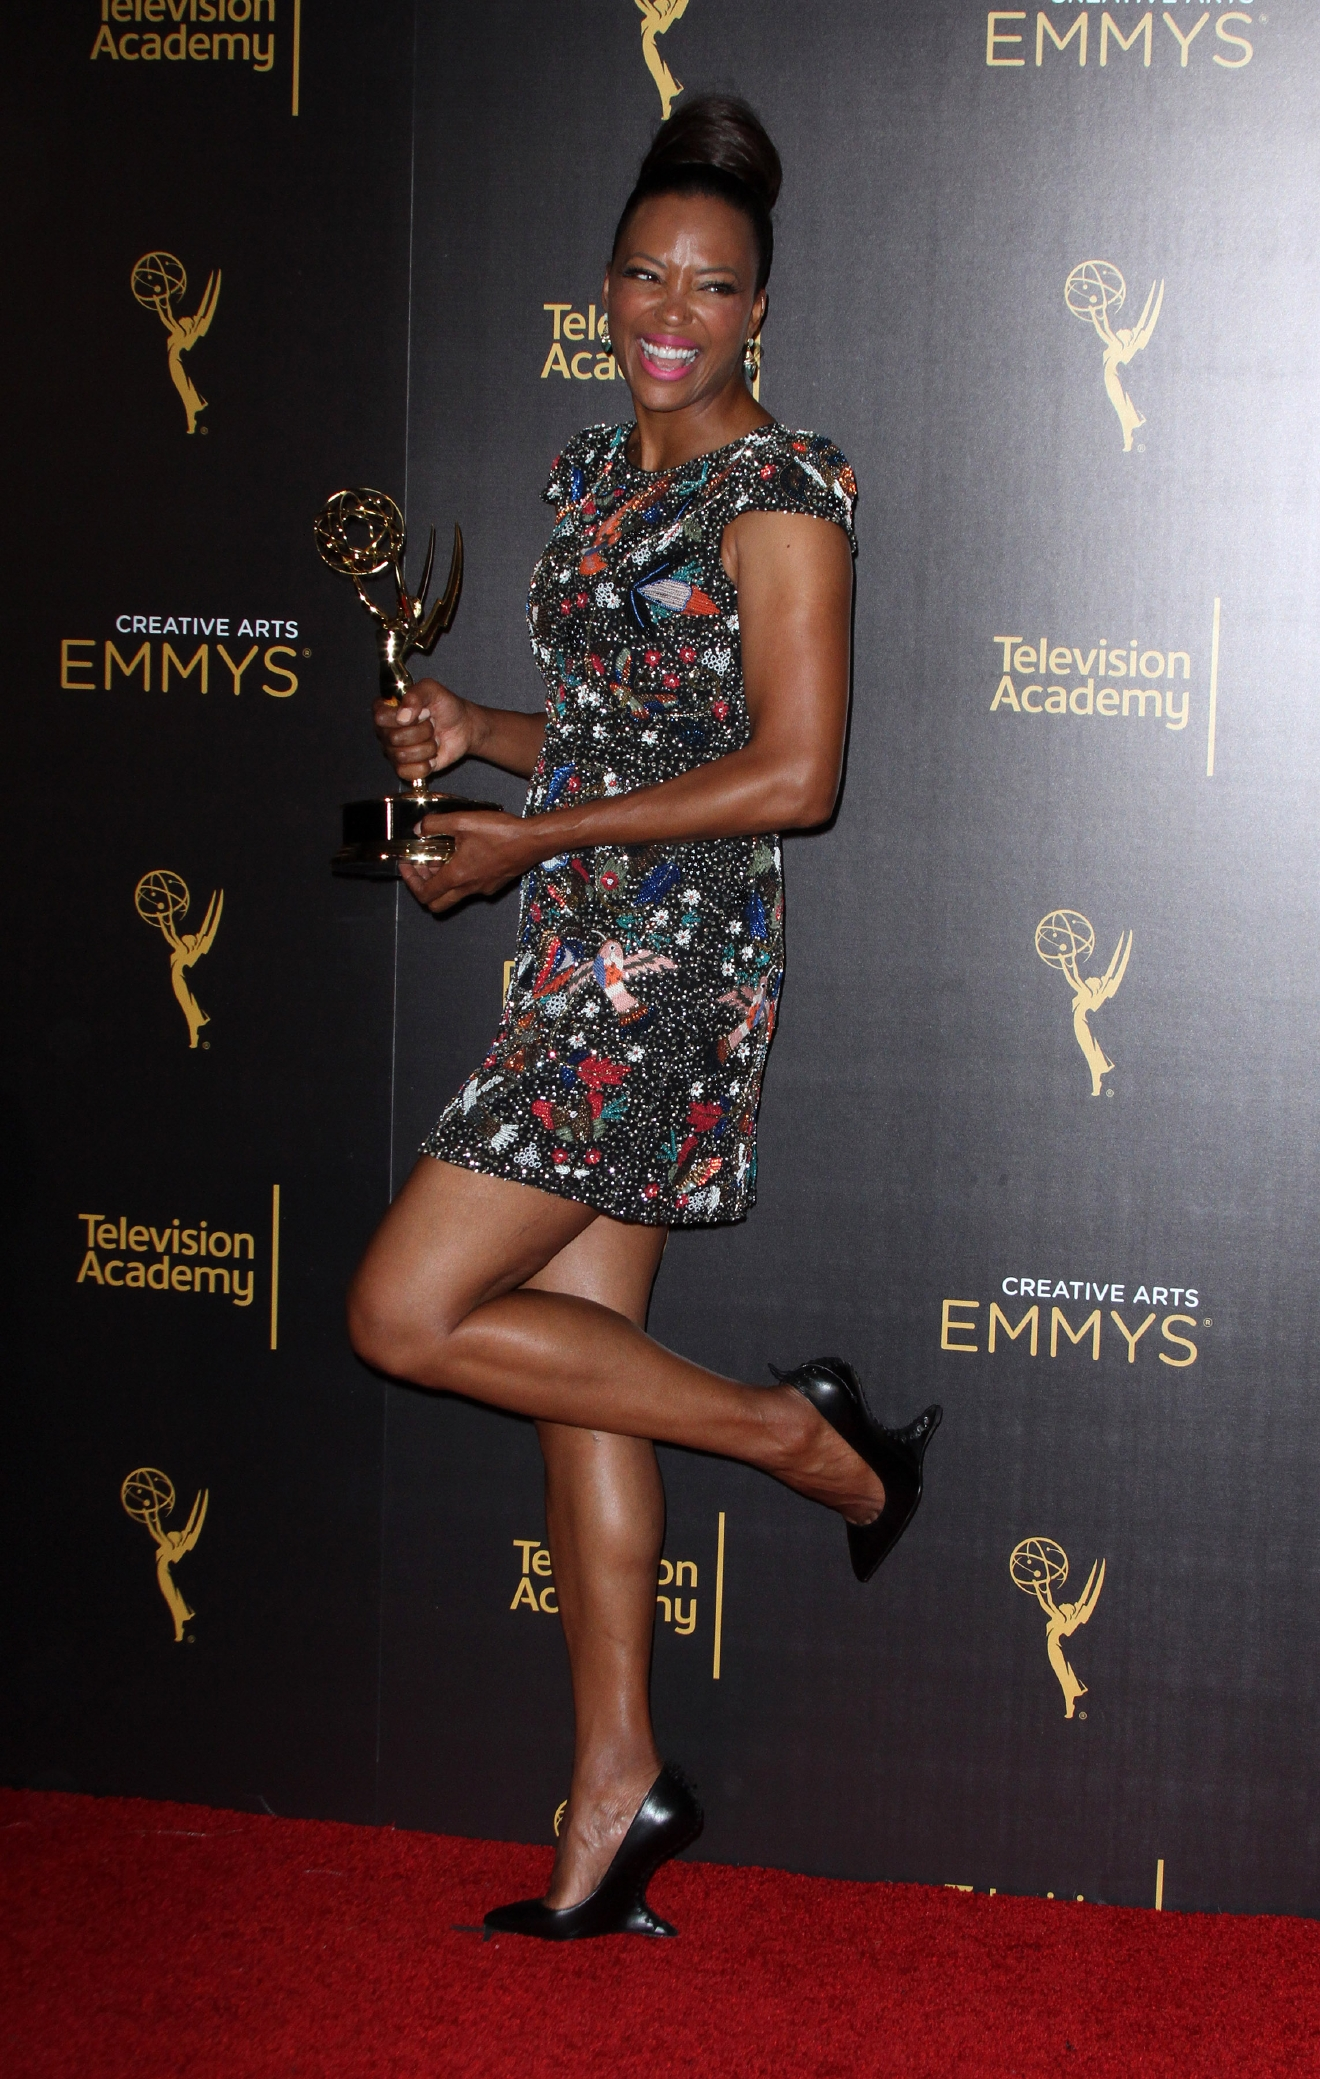 Creative Arts Emmy Awards 2016 Press Room - Day 2 held at the Microsoft Theatre                                    Featuring: Aisha Tyler                  Where: Los Angeles, California, United States                  When: 12 Sep 2016                  Credit: Adriana M. Barraza/WENN.com